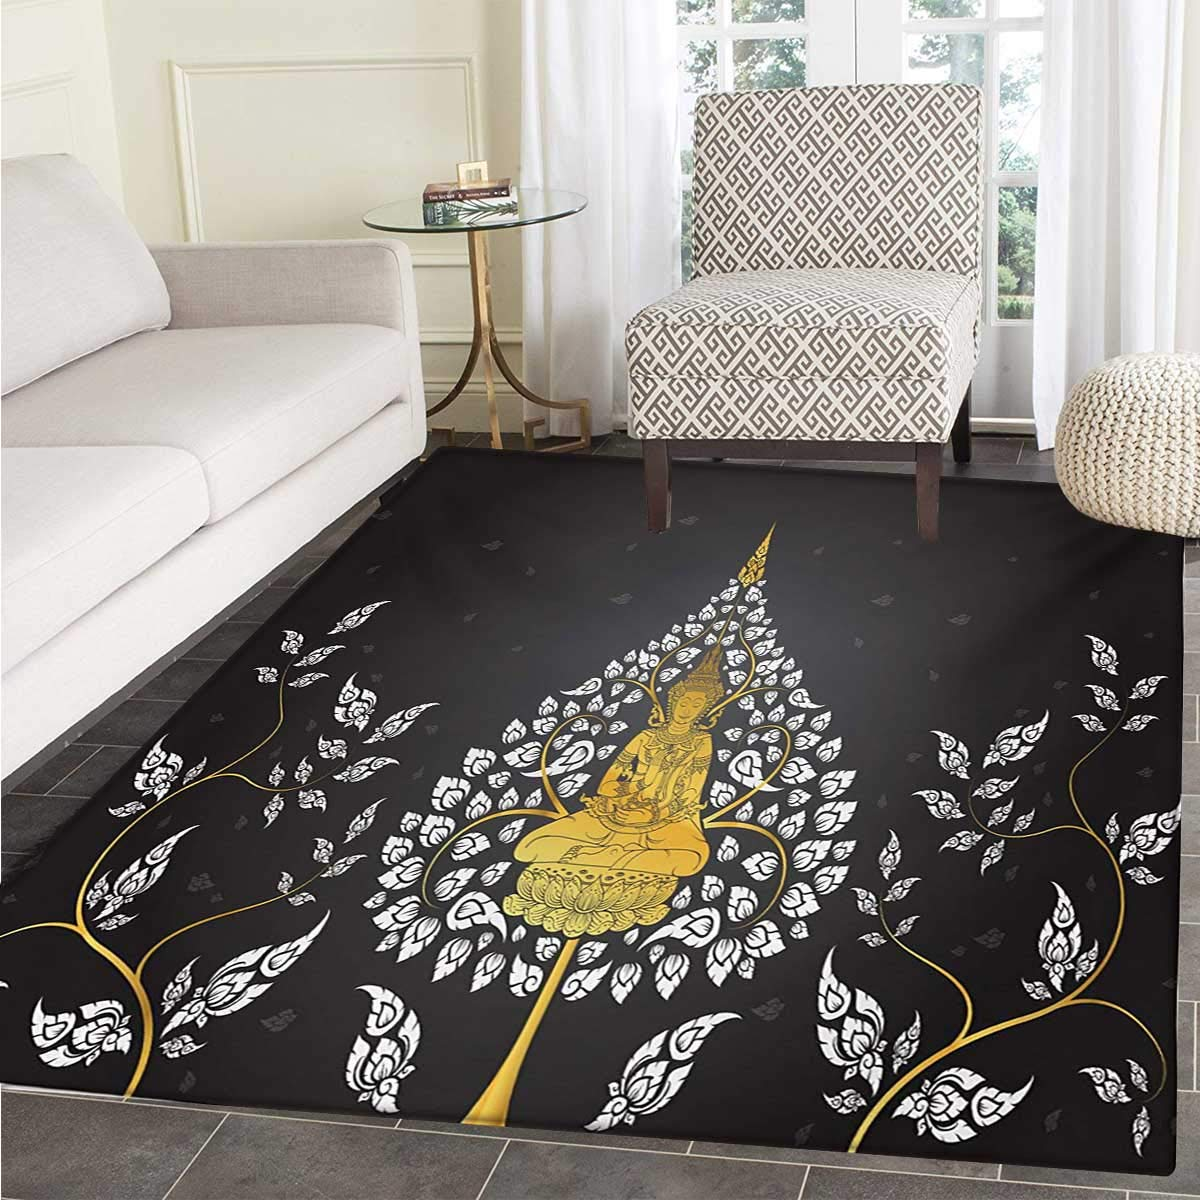 Asian Bath Mat tub Ancient Religious Thai Character Floral Elements Meditation Door Mats Inside Bathroom Mat Non Slip Backing 30''x40'' Charcoal Grey White Yellow